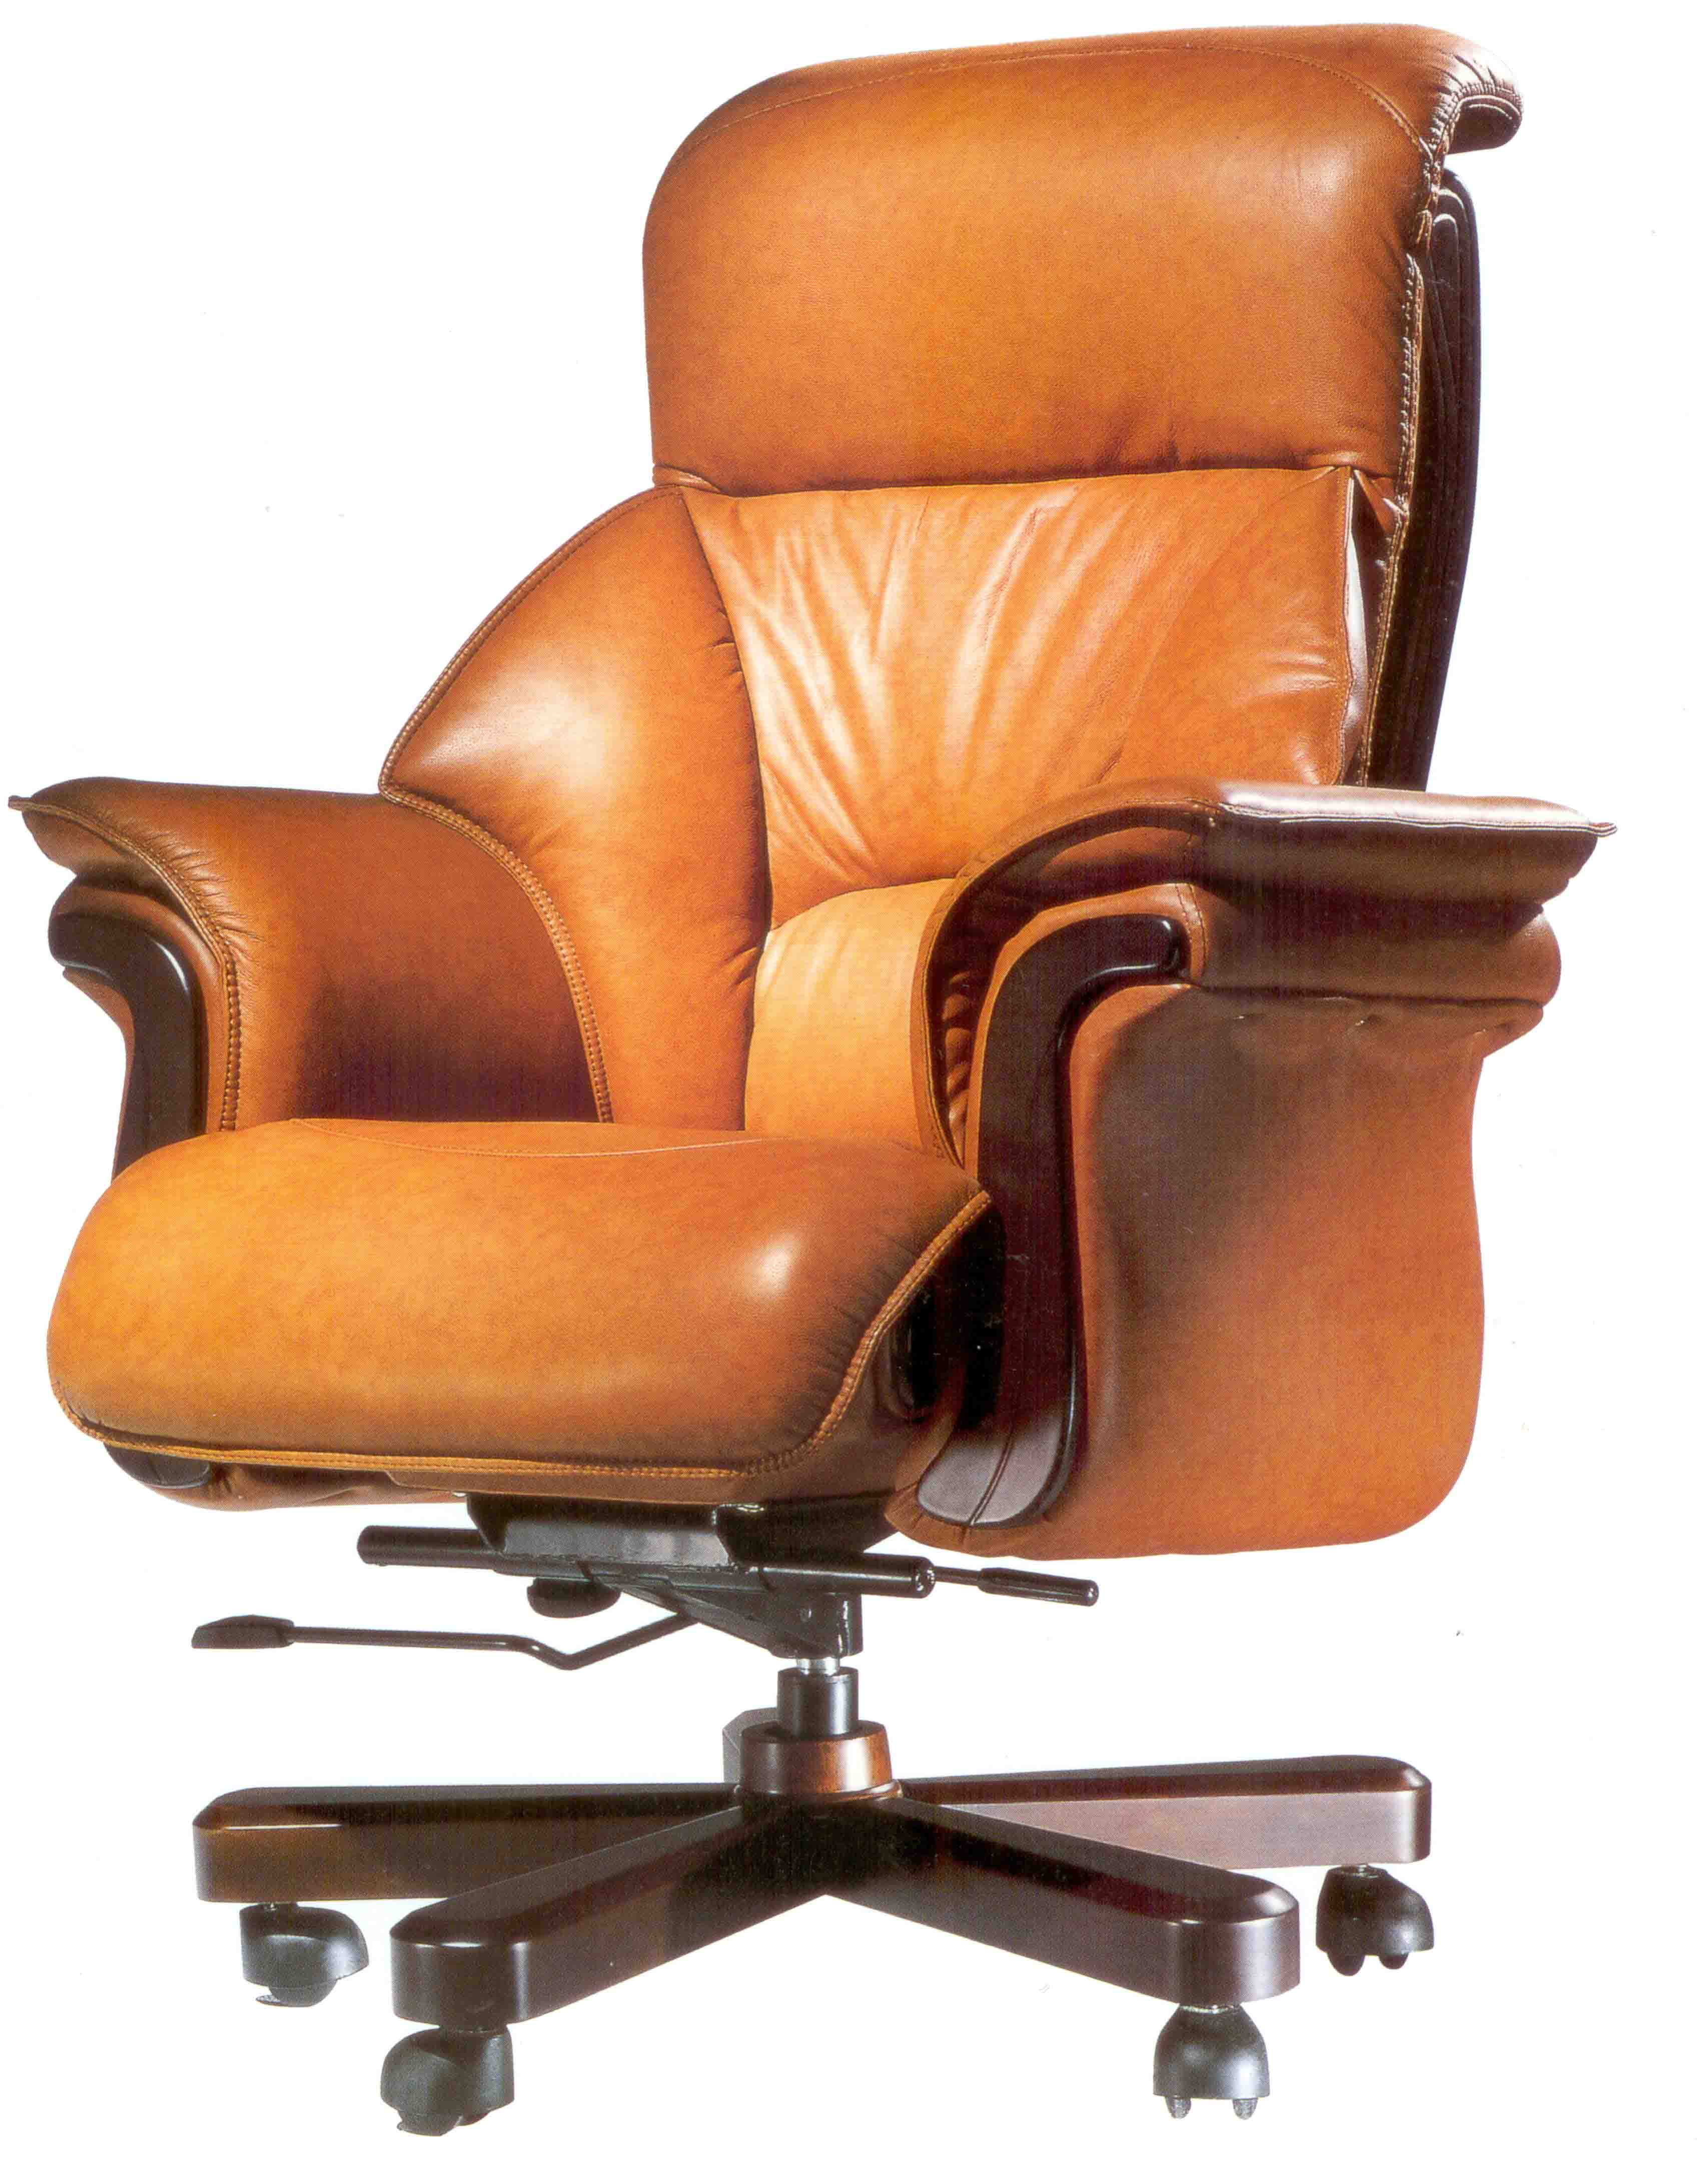 Office Leather Chairs Office Furniture Office Chairs Macalinne